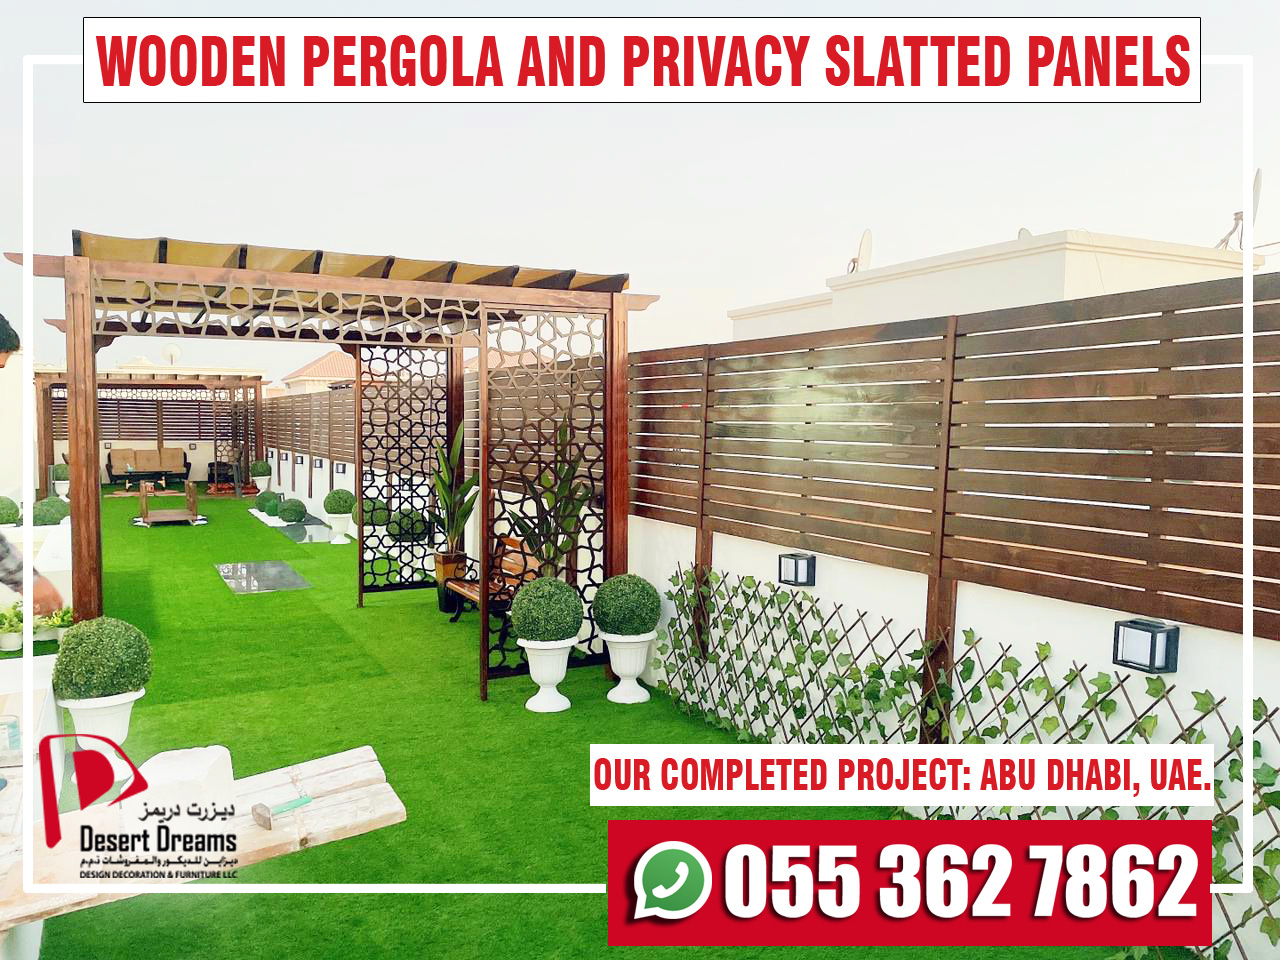 Wooden Pergola and Privacy Slatted Fences in UAE-3.jpg